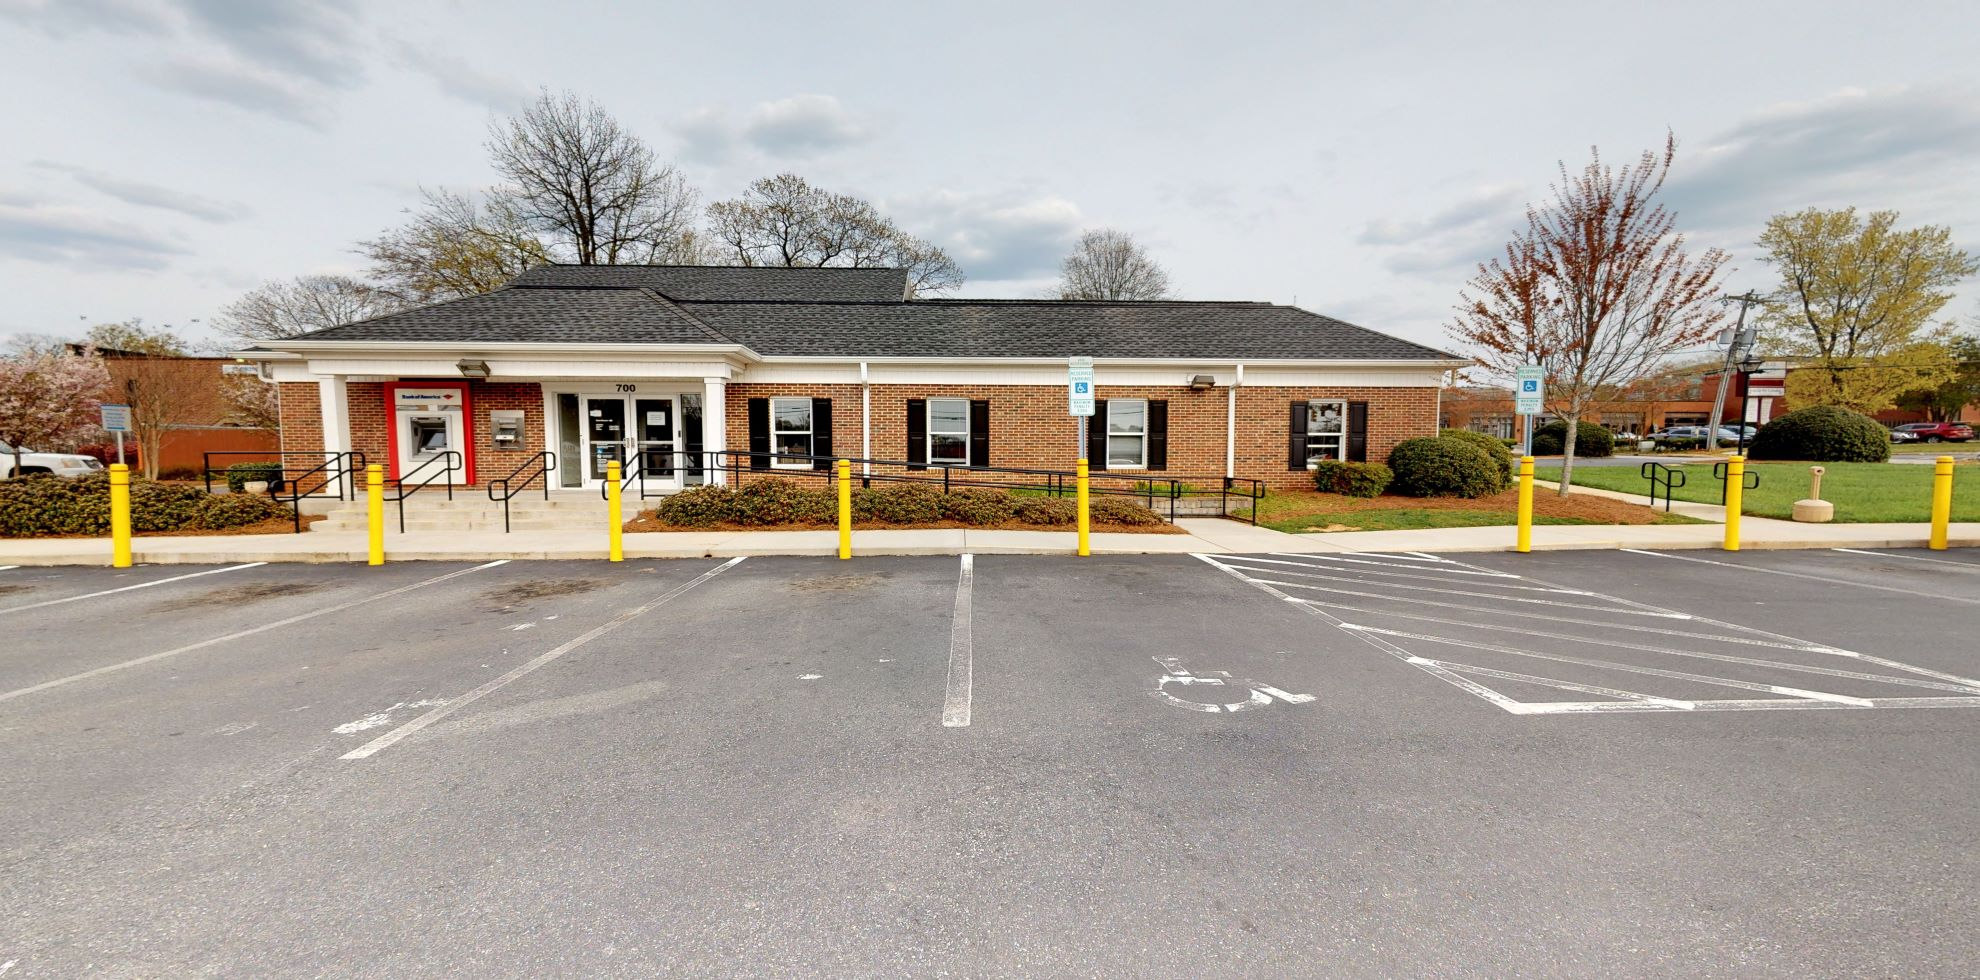 Bank of America financial center with drive-thru ATM   700 College Rd, Greensboro, NC 27410